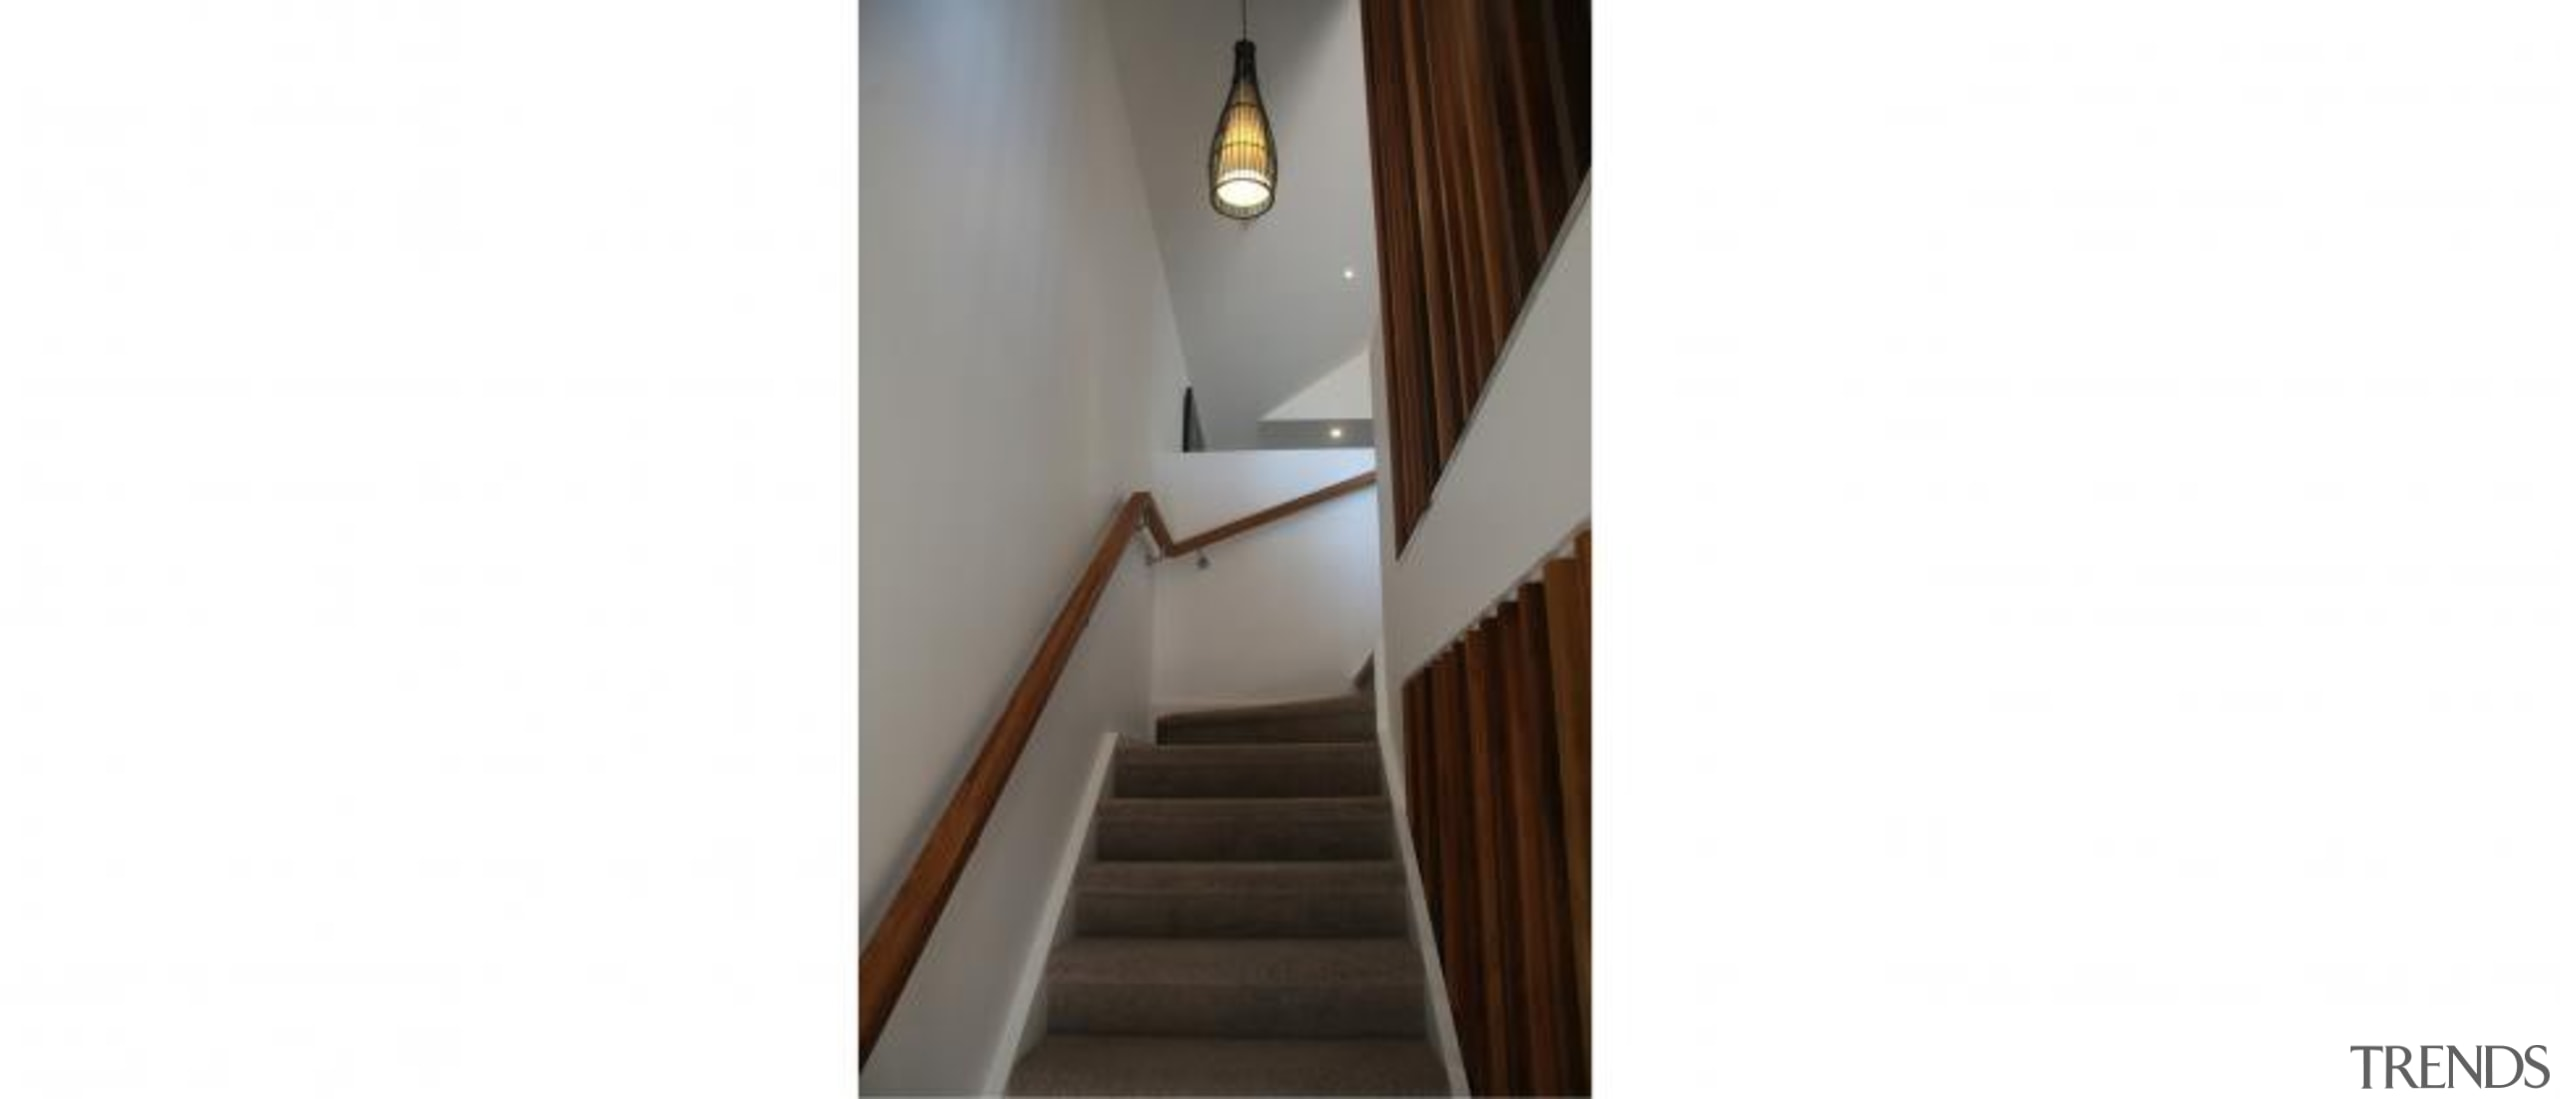 Multi unit design by Design House Architecture - lighting, product design, stairs, wood, white